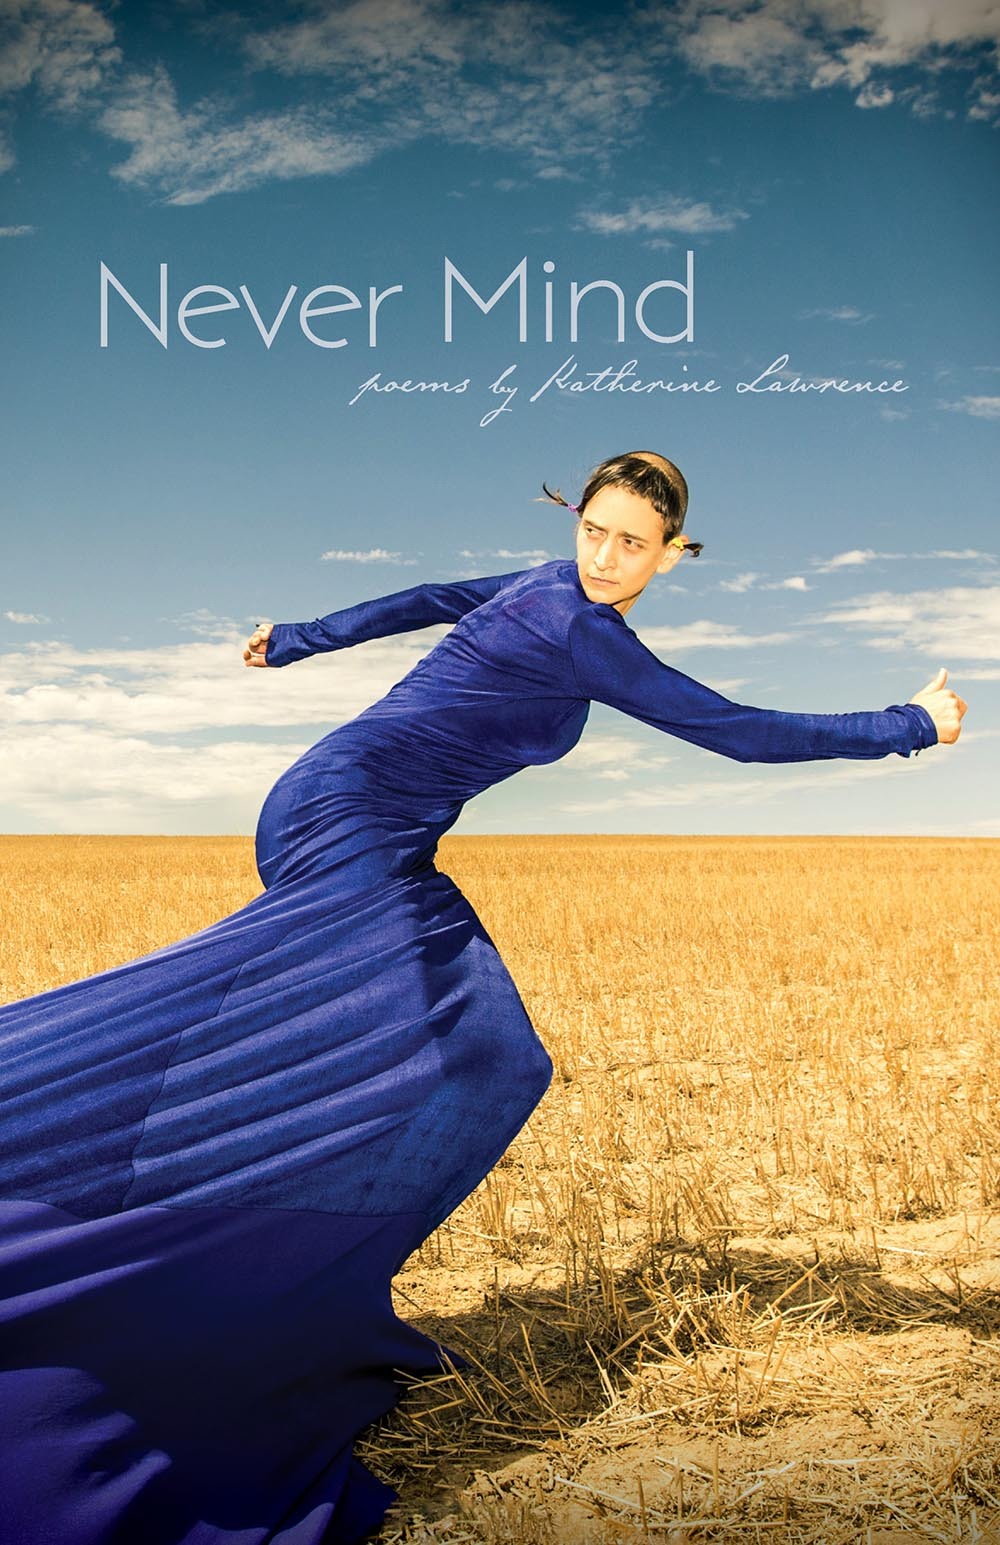 Never Mind by Katherine Lawrence